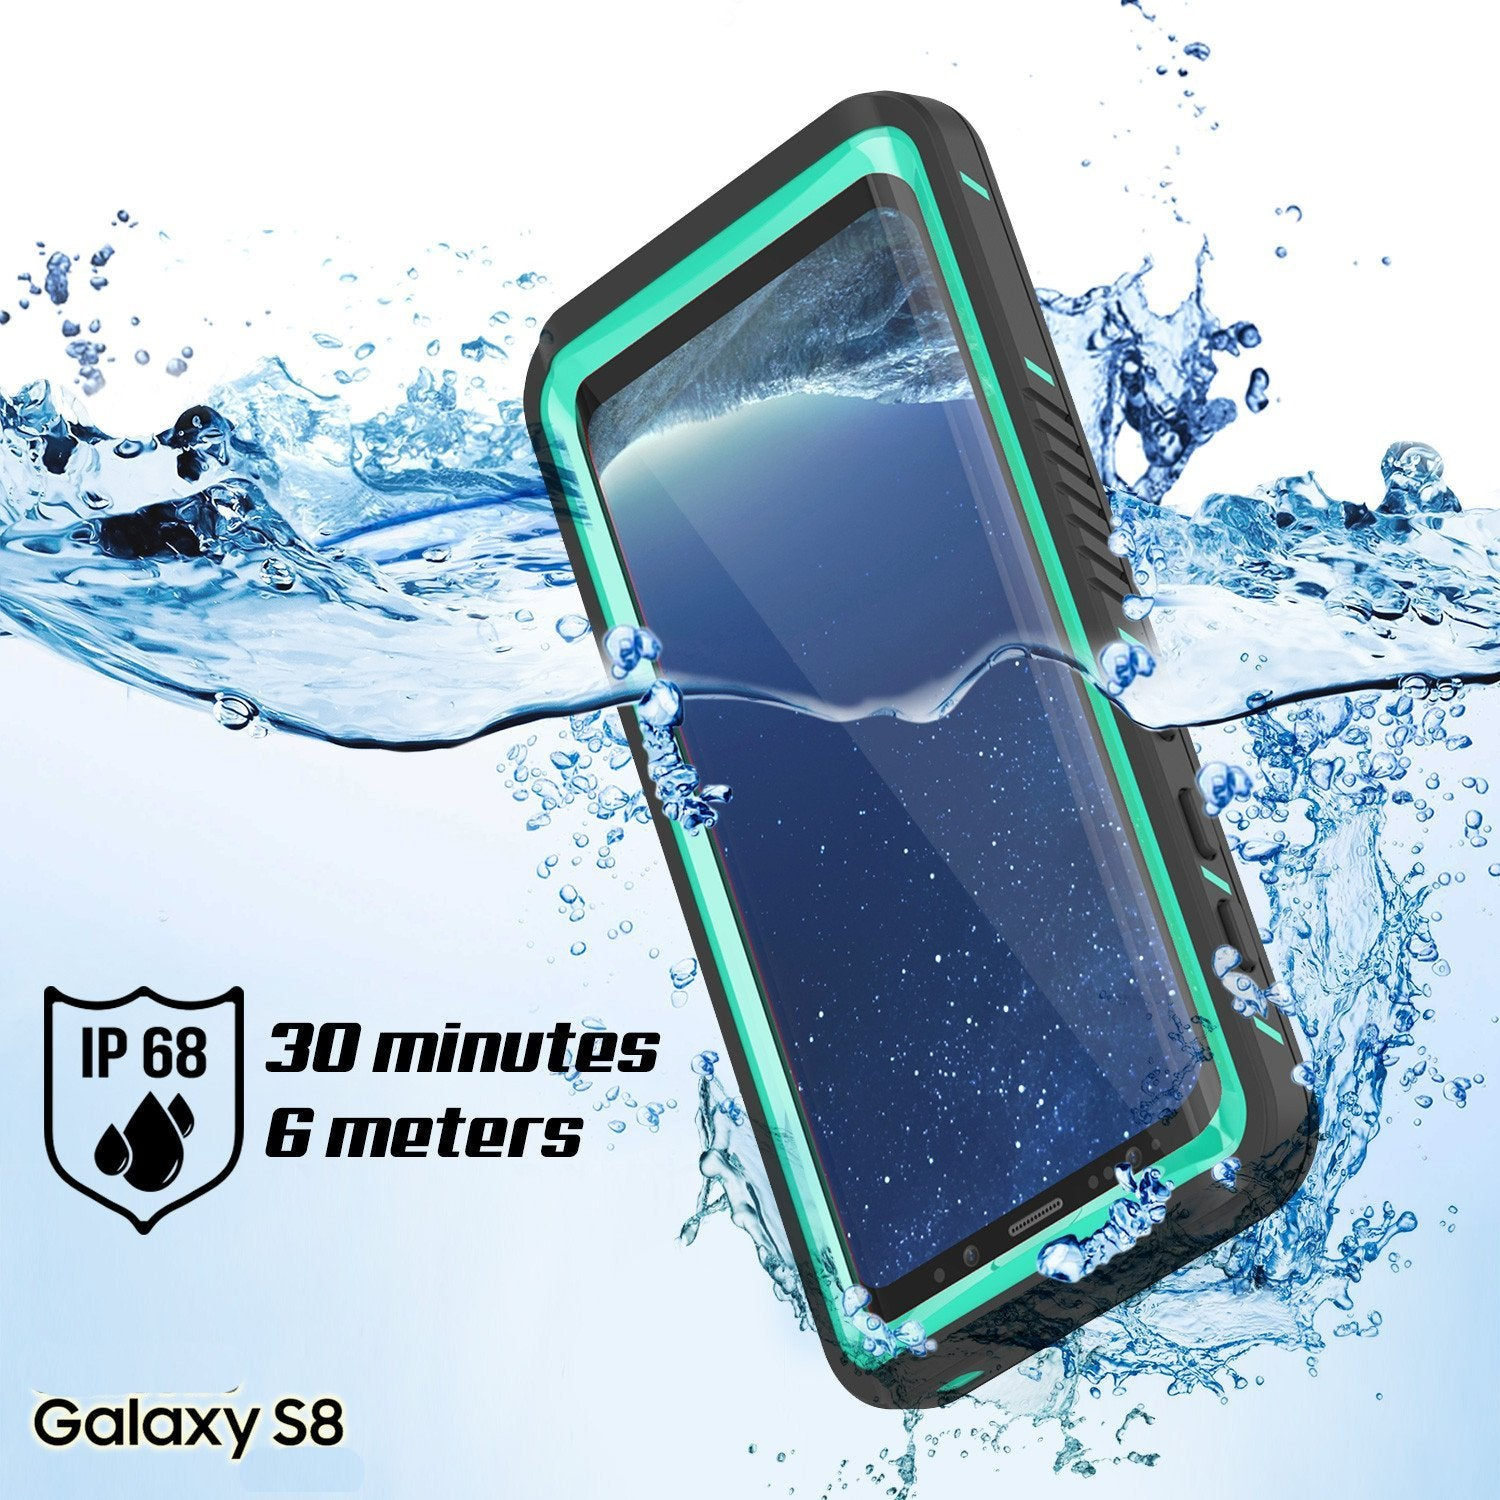 Galaxy S8 PLUS Waterproof Case, Punkcase [Extreme Series] Slim Fit, Armor Cover W/ Built In Screen Protector for Samsung Galaxy S8+ [Teal]